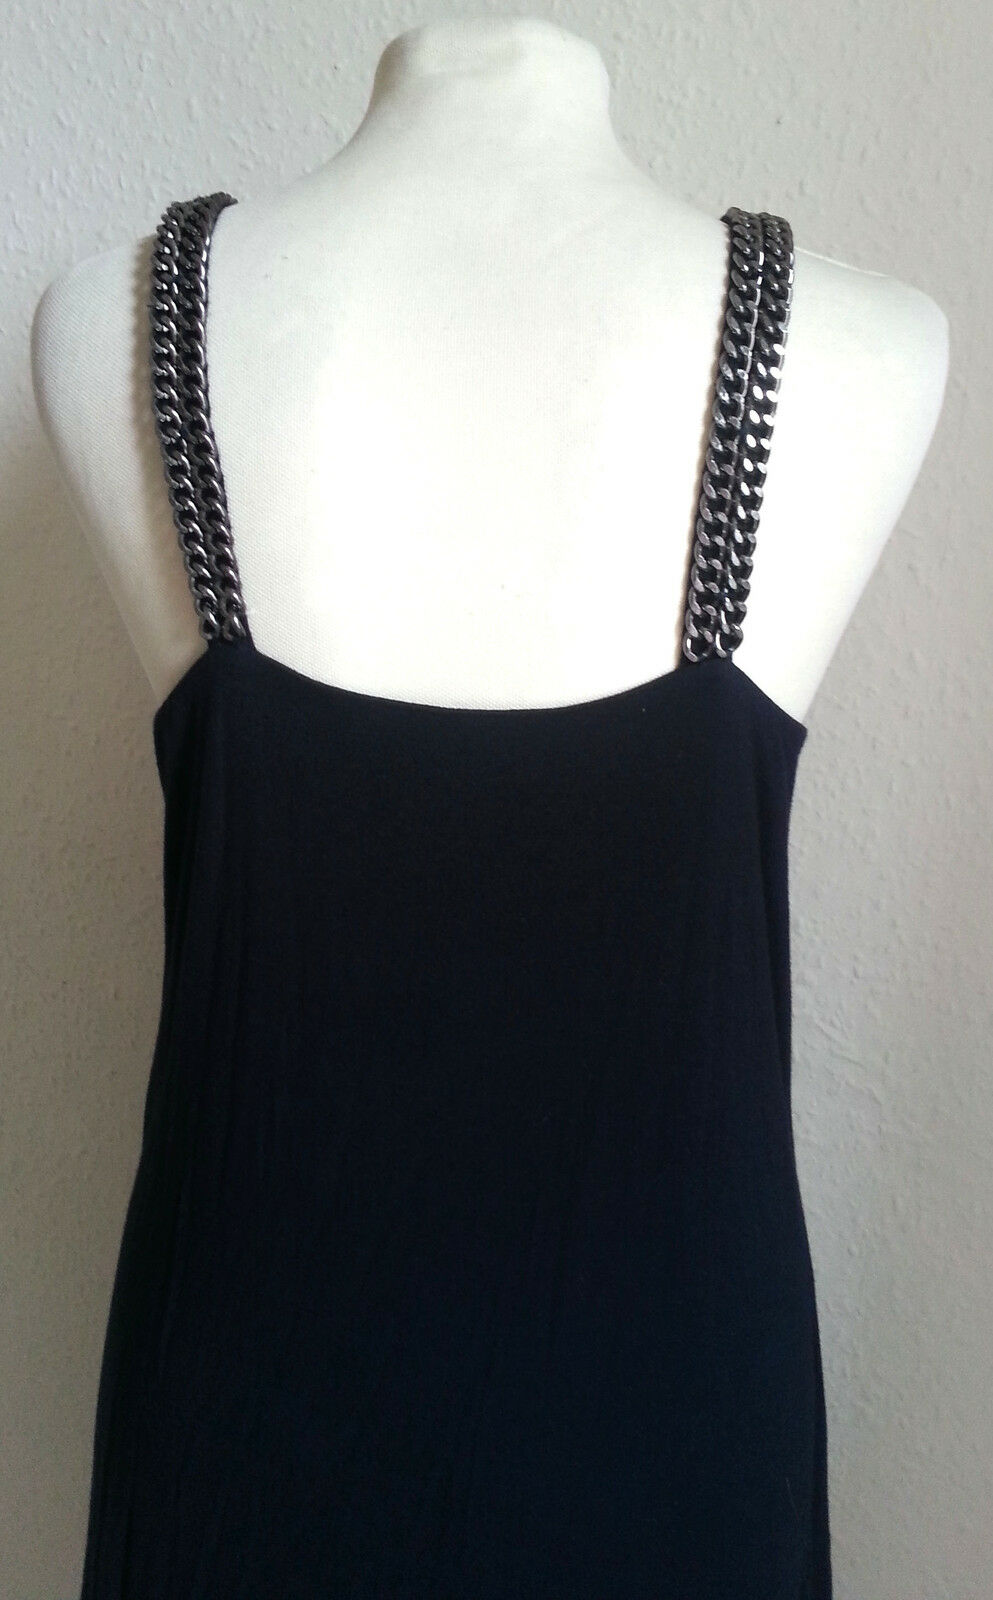 DtLM Don't Label Me Me Me Navy bluee Strappy Party Dress with Curb Chain Trim 42 10 c17a65